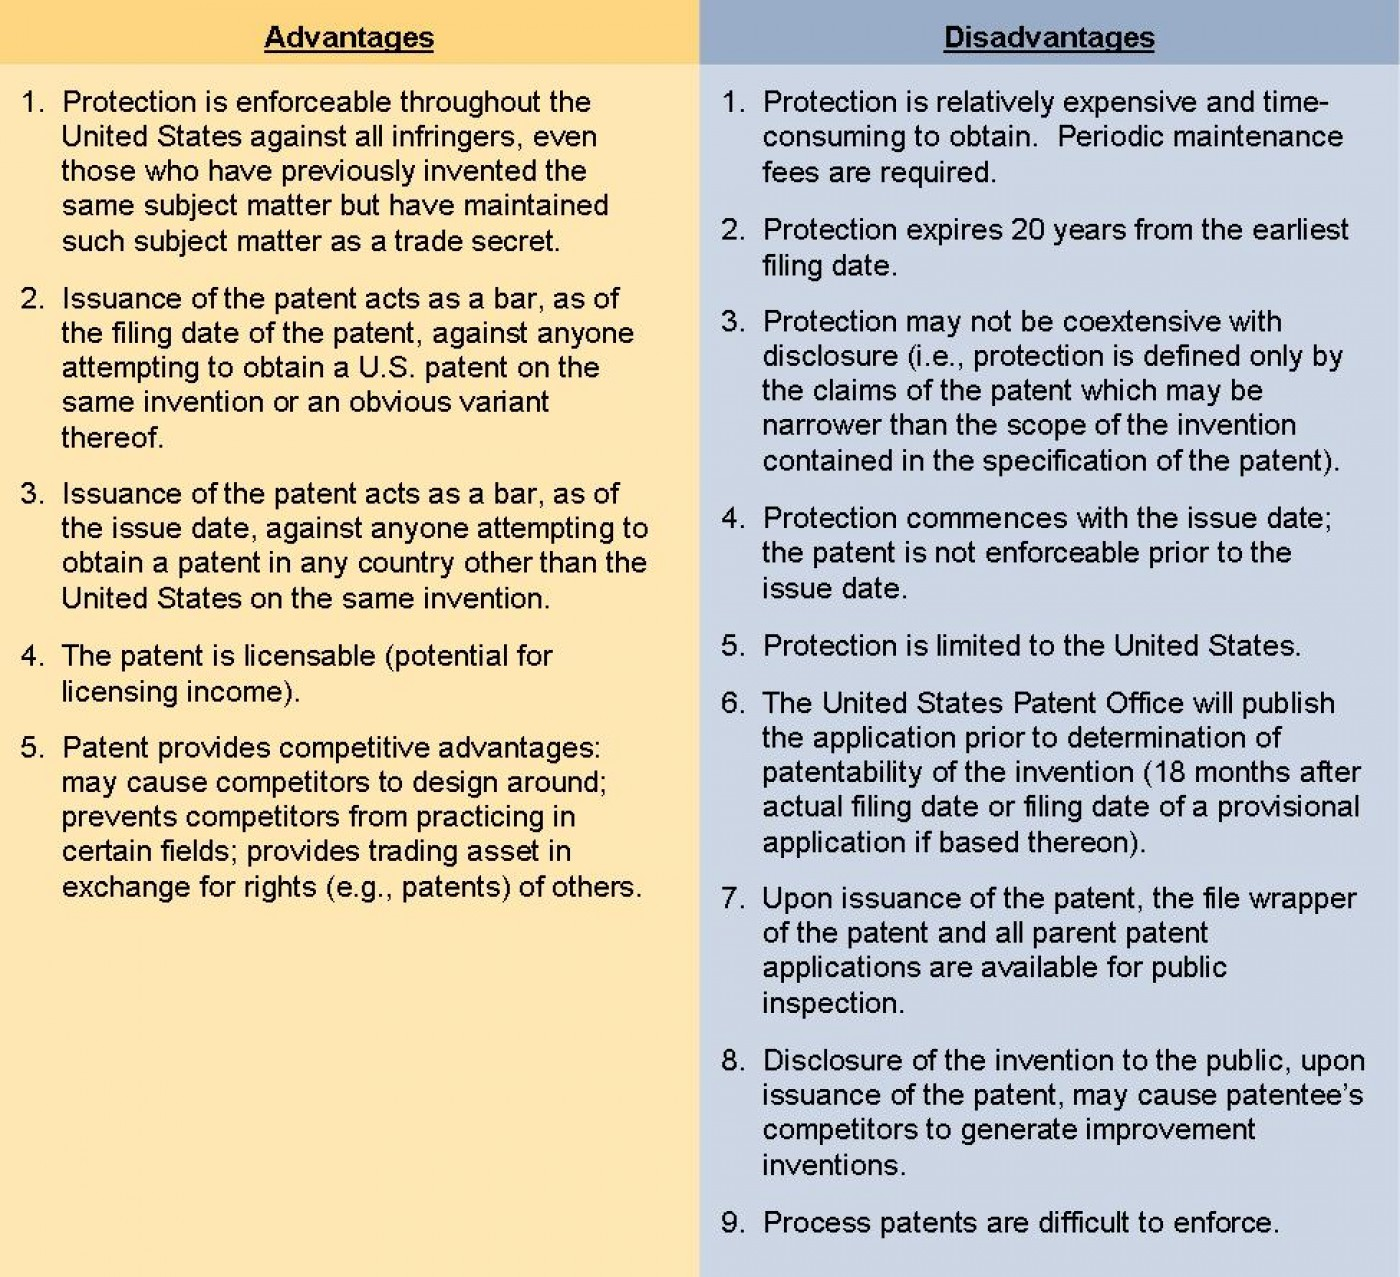 advantages and disadvantages of technology essay example essays    newspic advantages and disadvantages of technology essay  striking pdf nuclear ielts in kannada